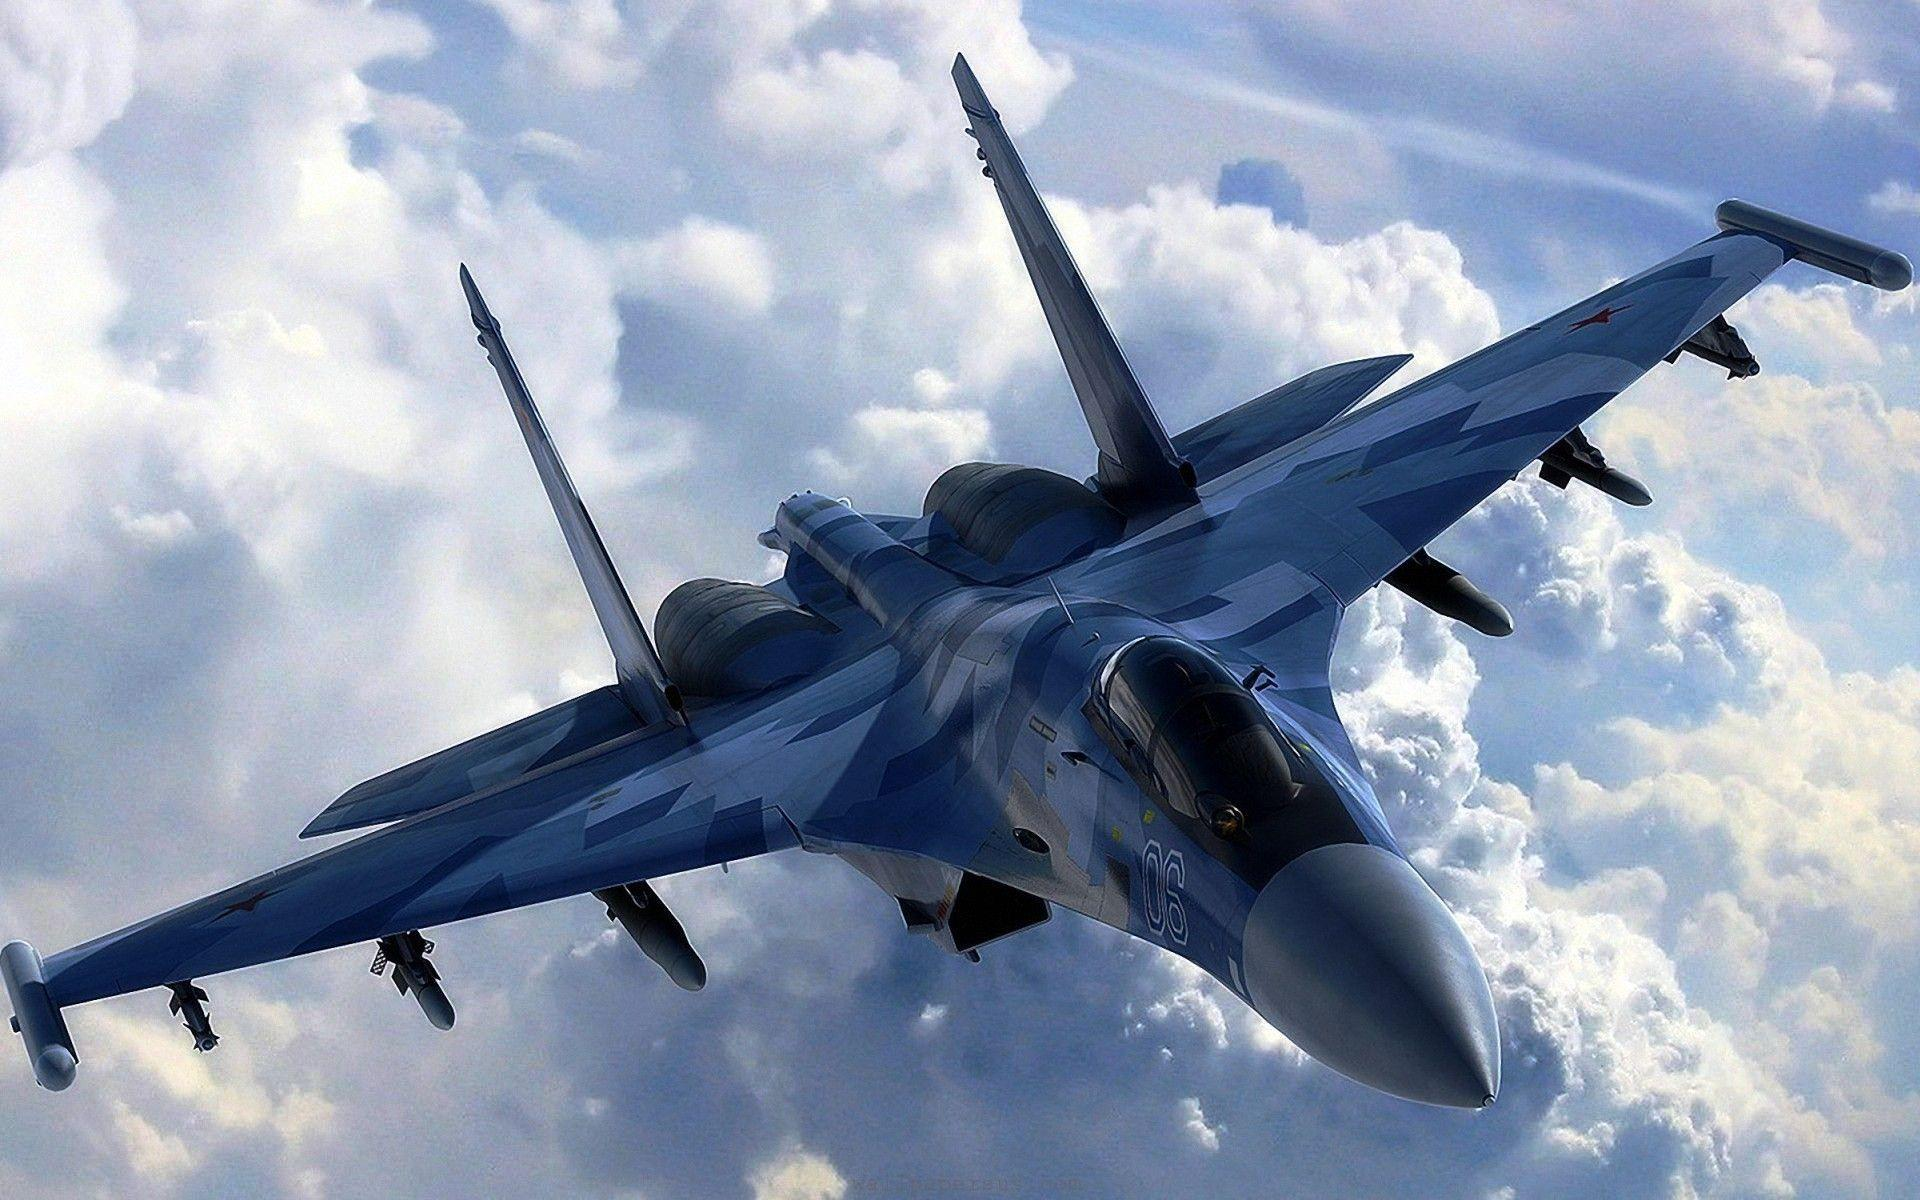 Sukhoi T-50 Jet Fighter Aircraft Wallpaper in high resolution free ...